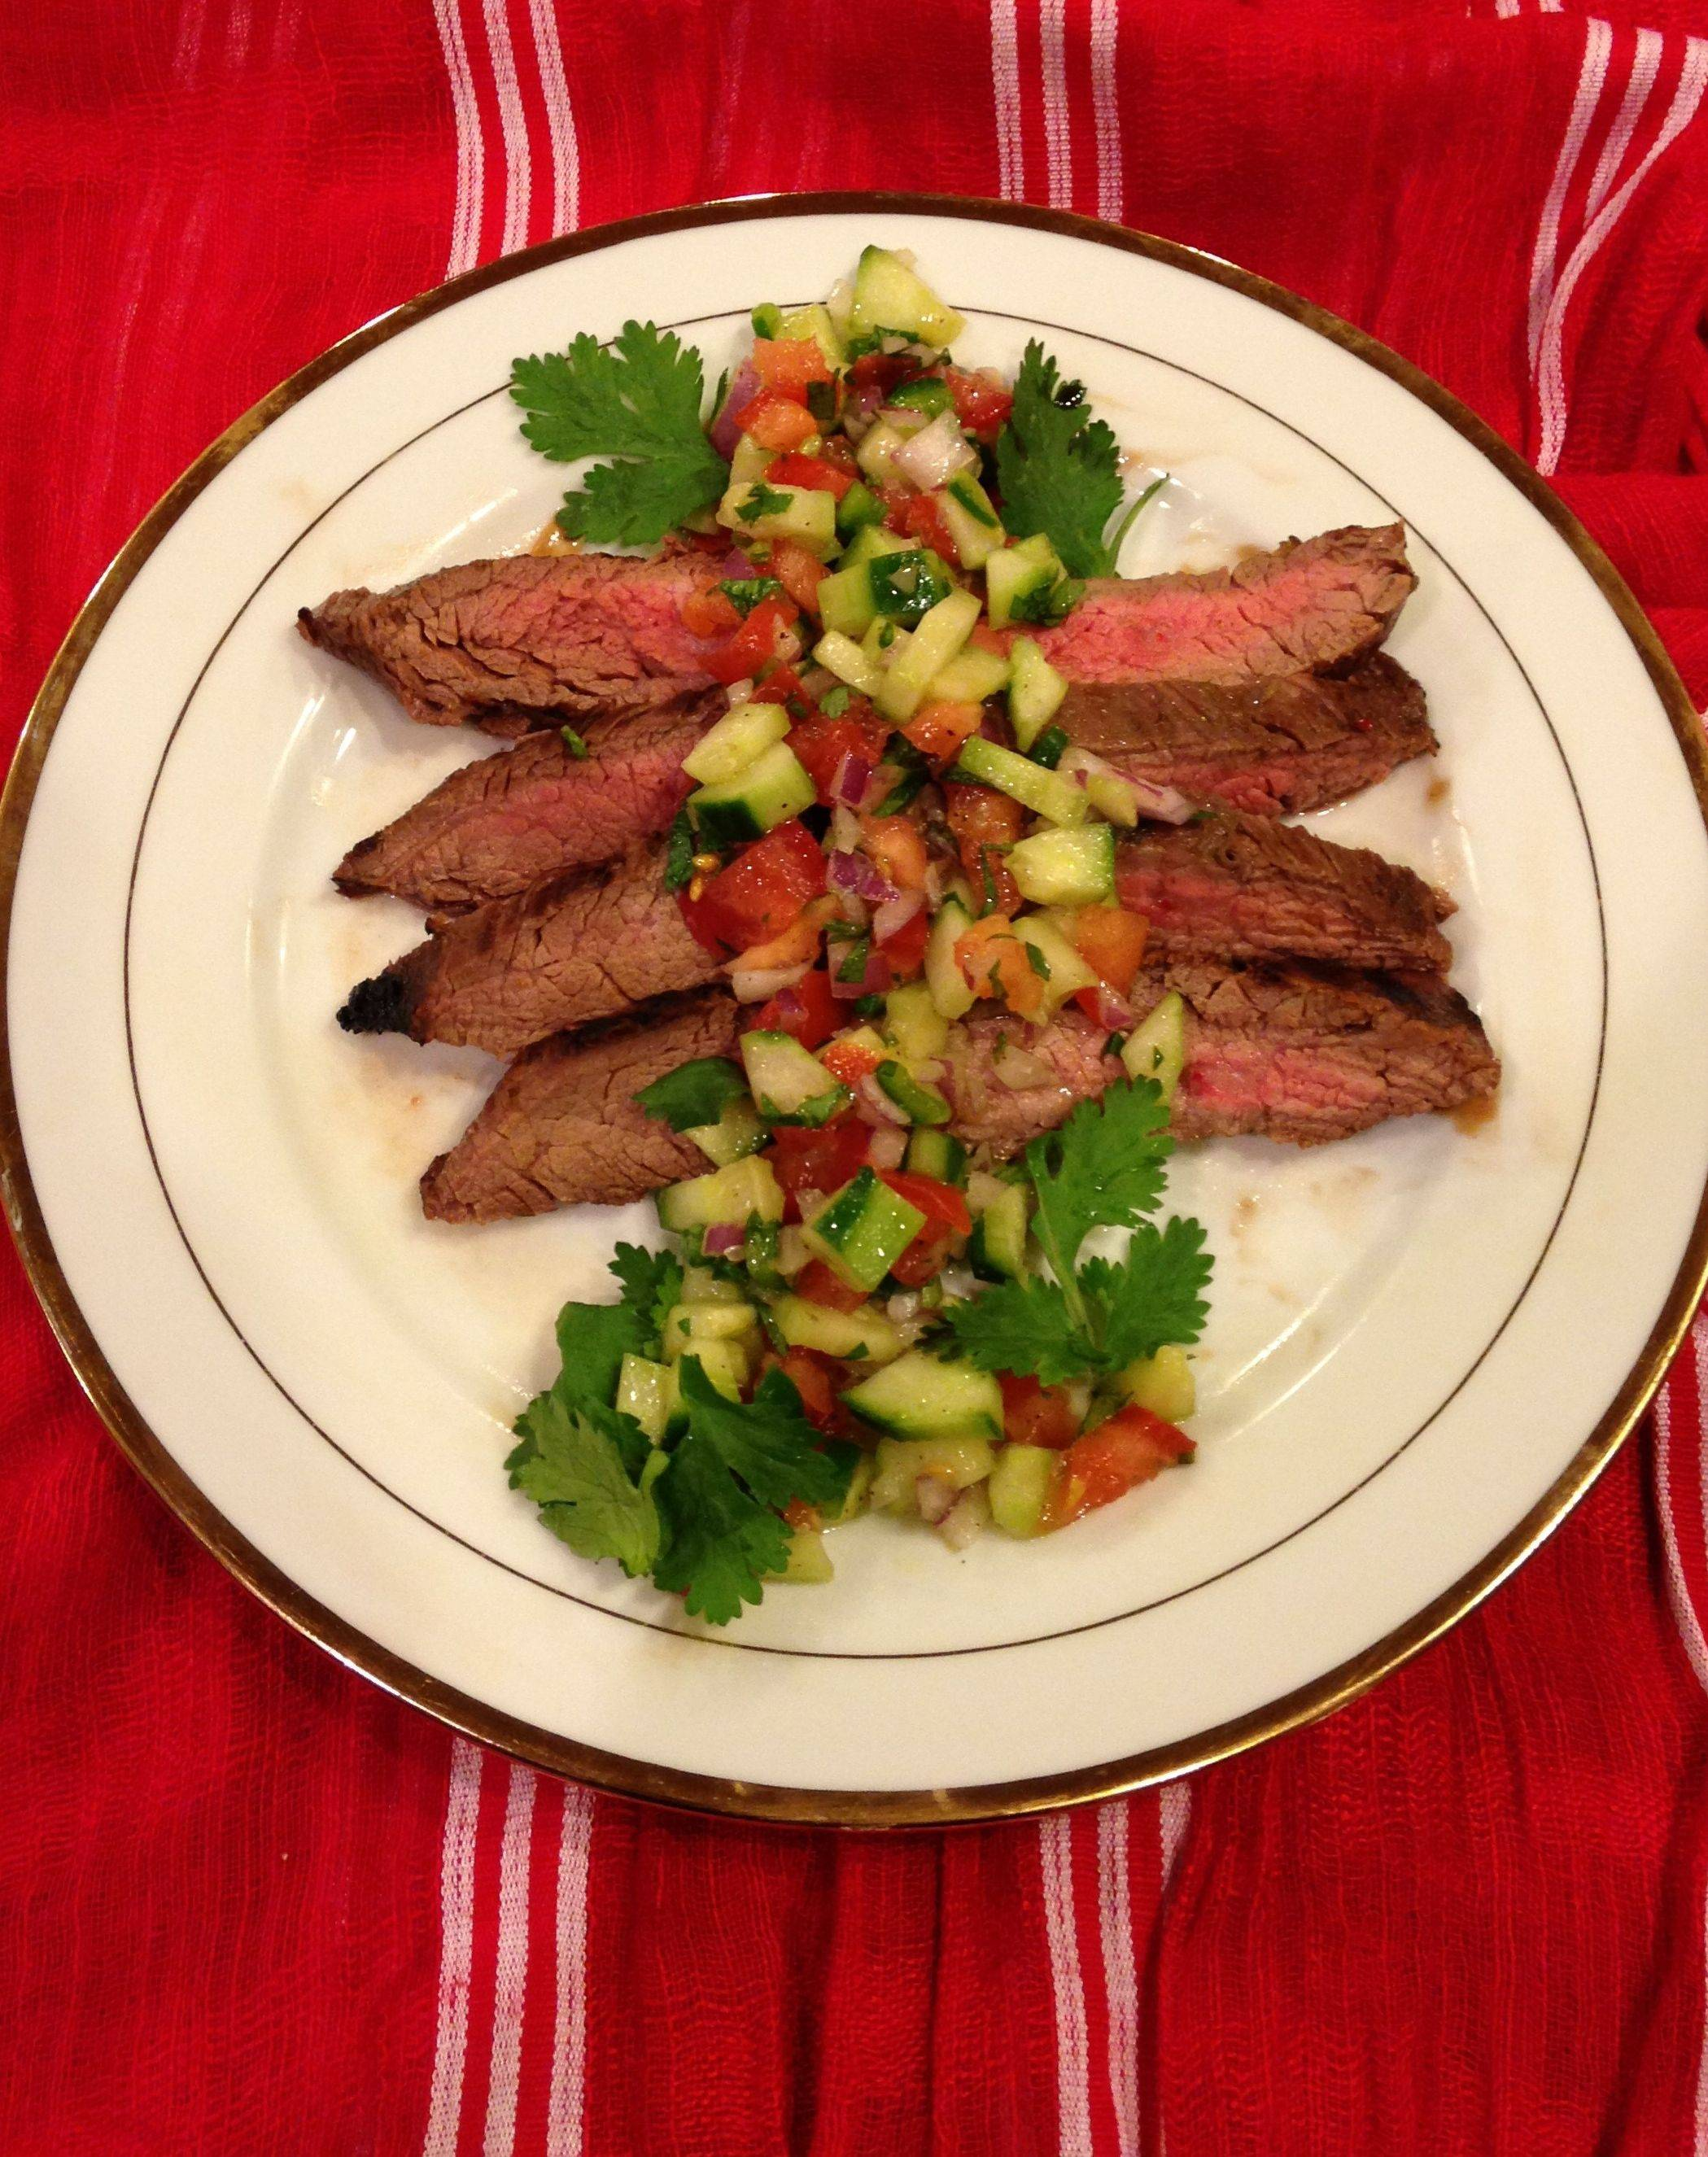 Lime gelatin and tequila flavor a marinade for flank steak. Serve it with a refreshing cucumber salsa.